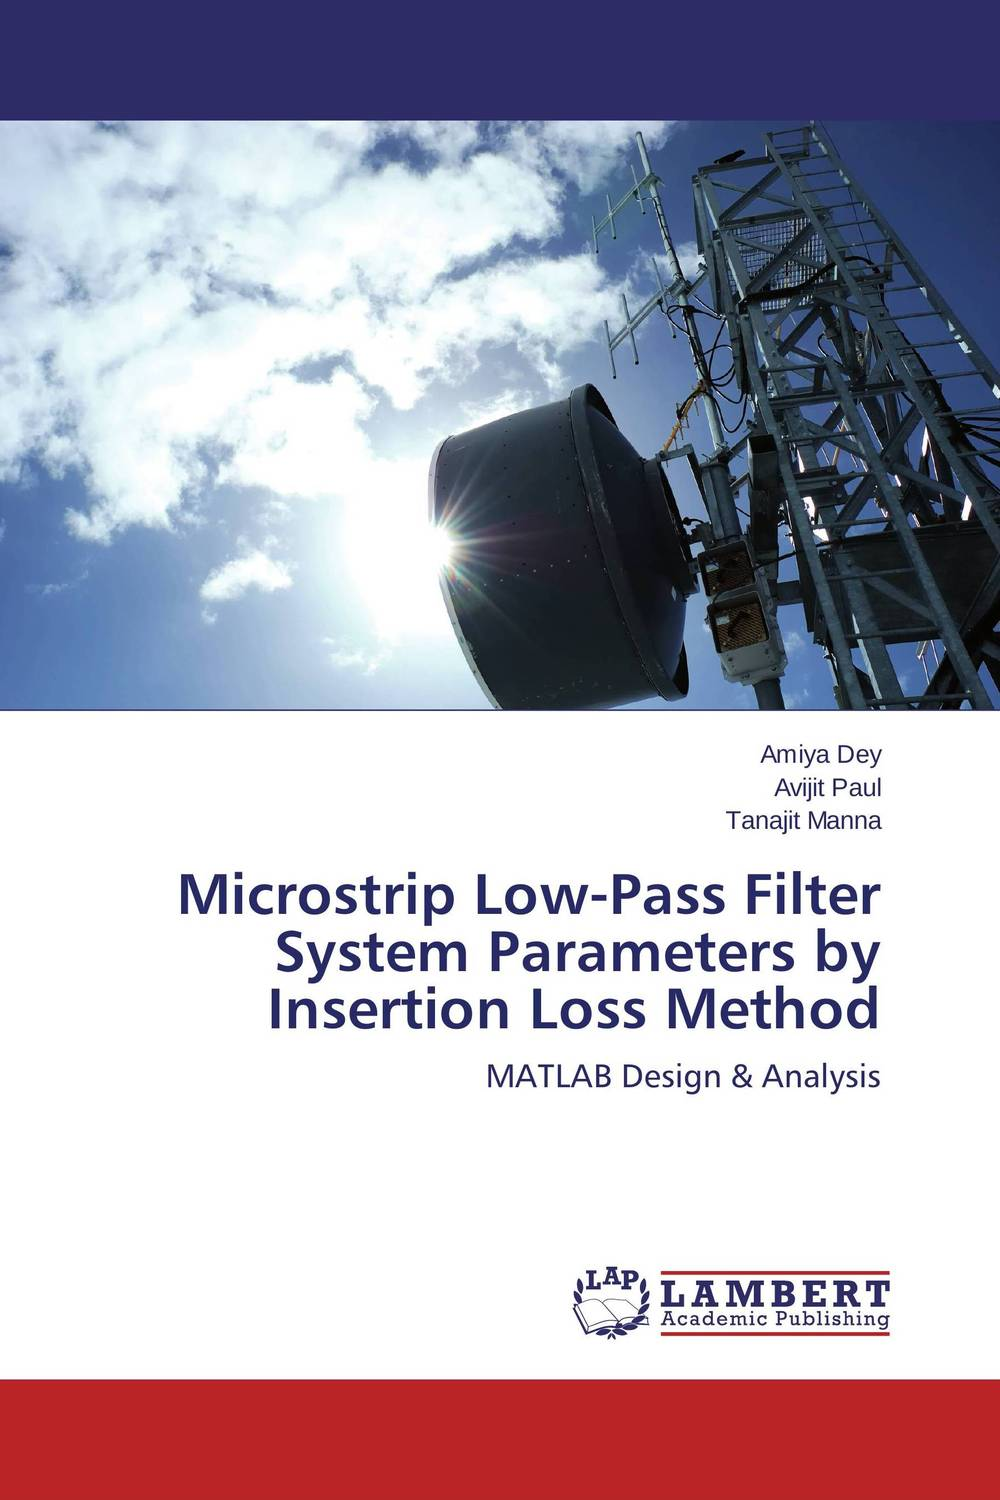 Microstrip Low-Pass Filter System Parameters by Insertion Loss Method simulation of atm using elliptic curve cryptography in matlab